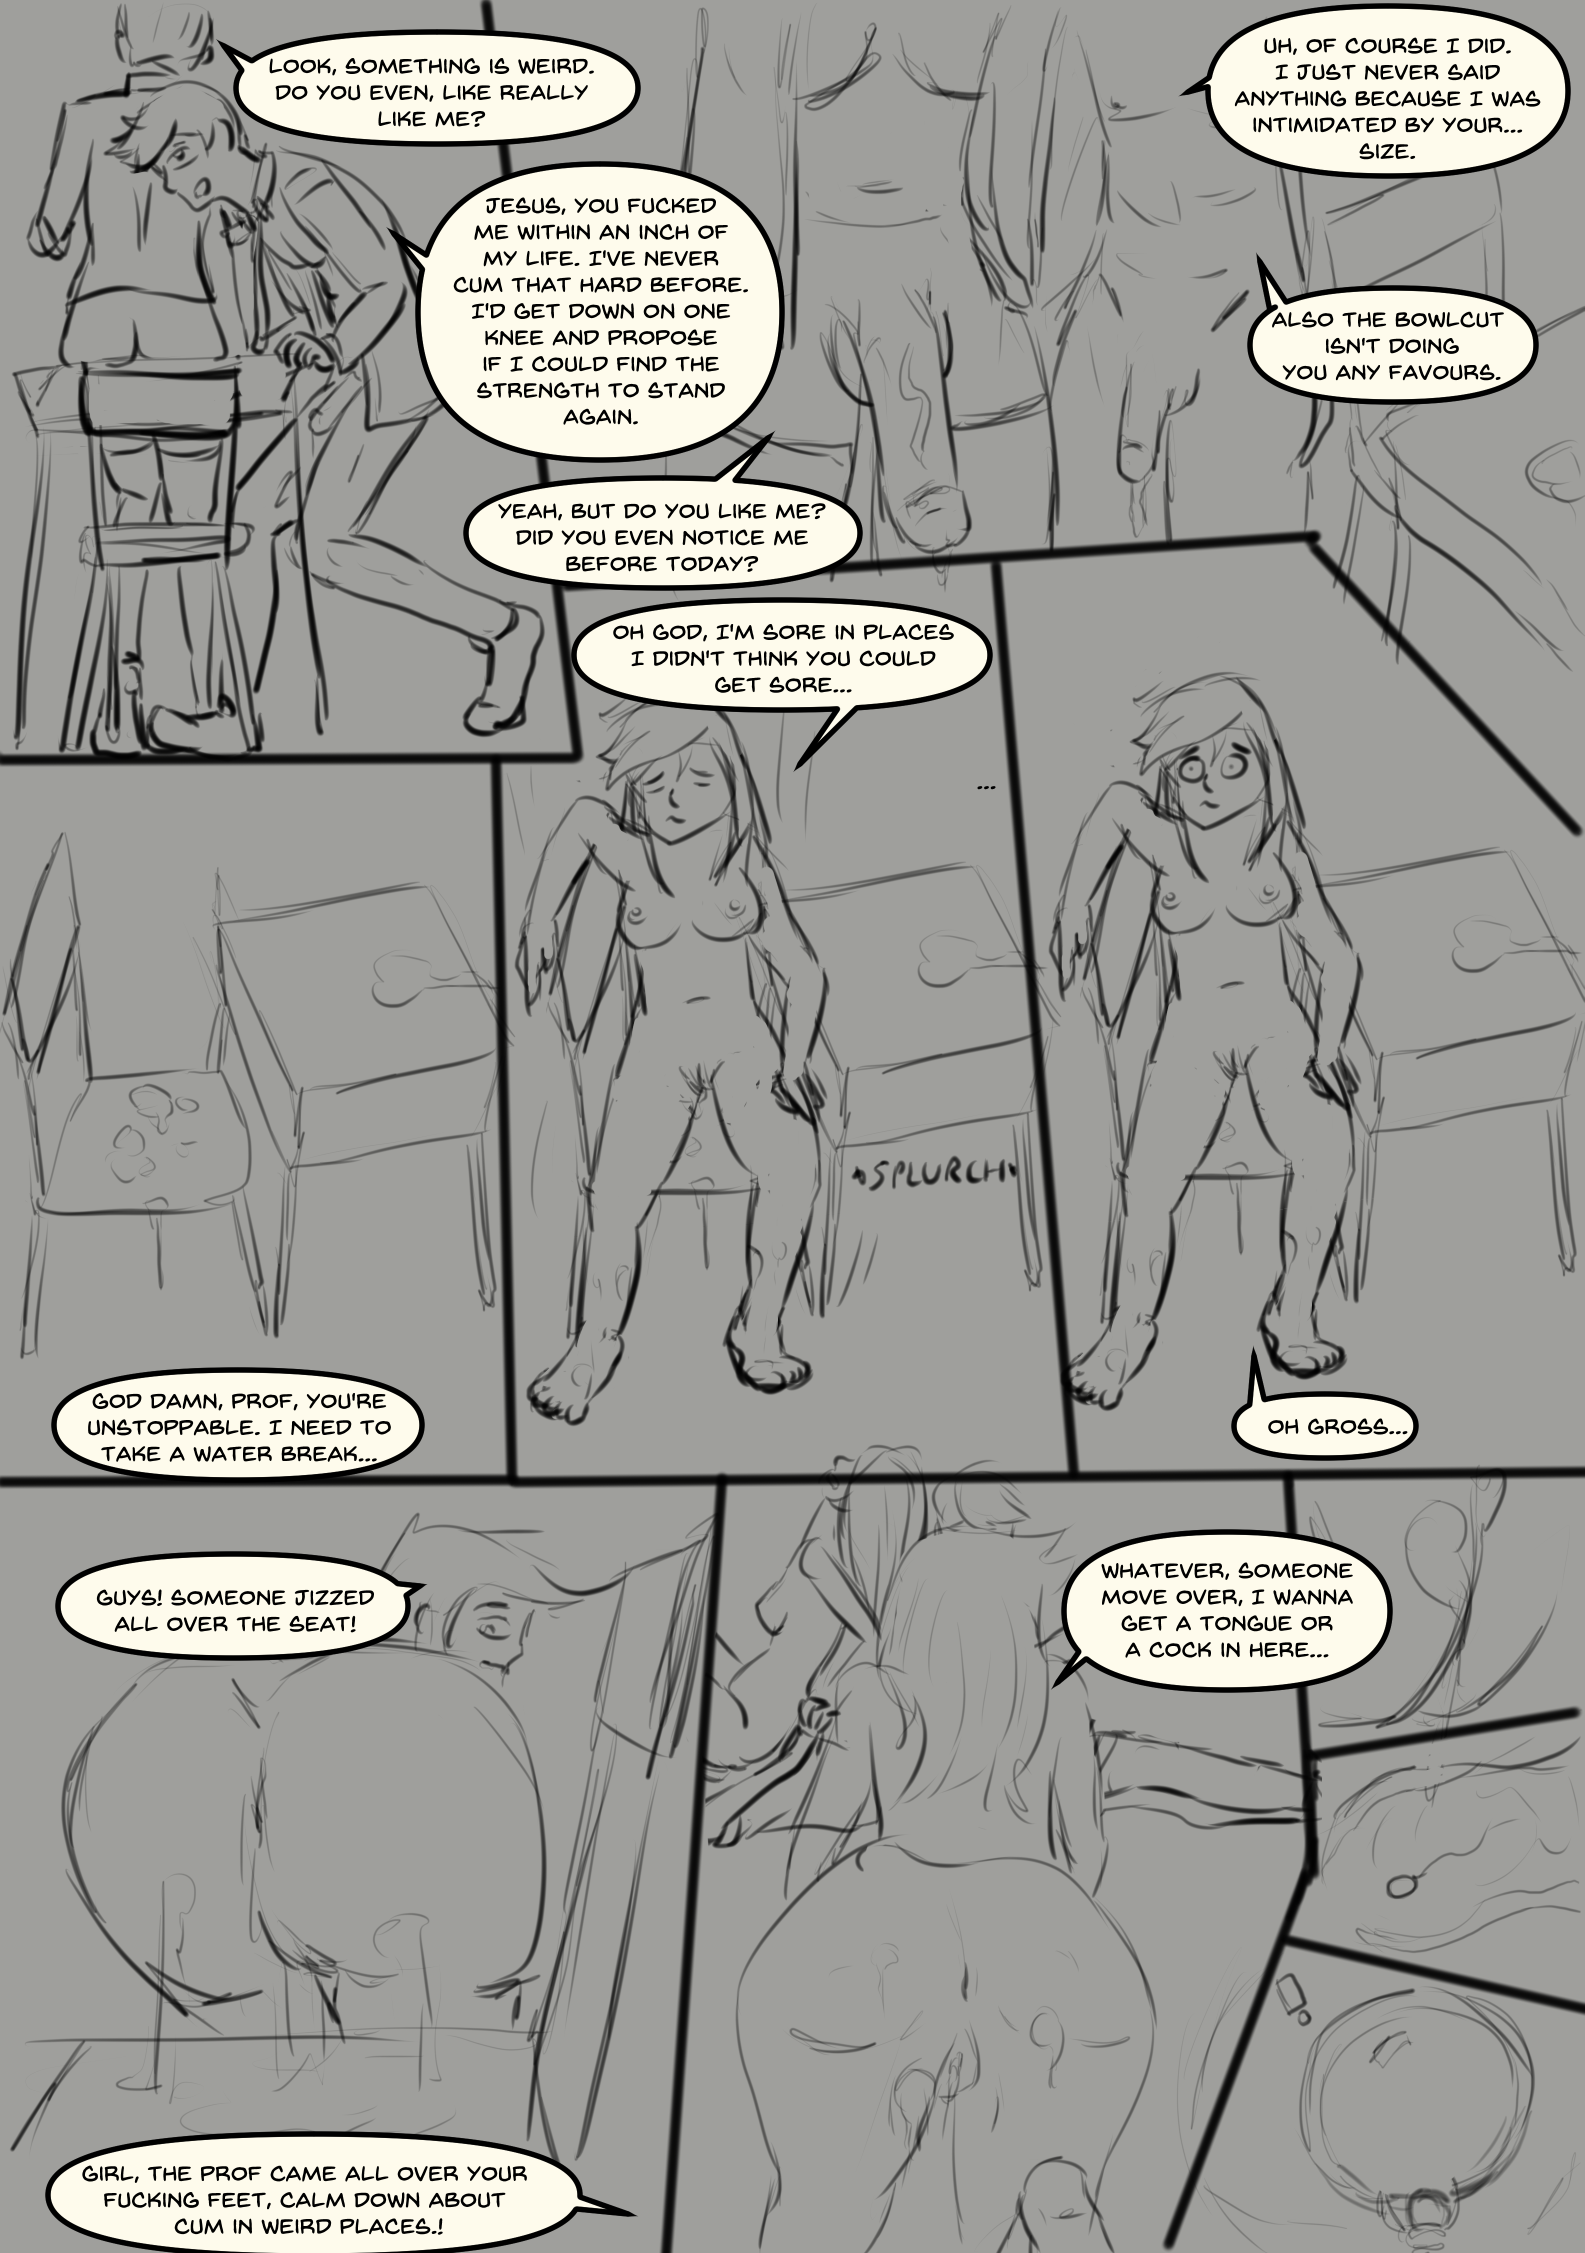 Reproductive Health: Chapter 1, Page 25